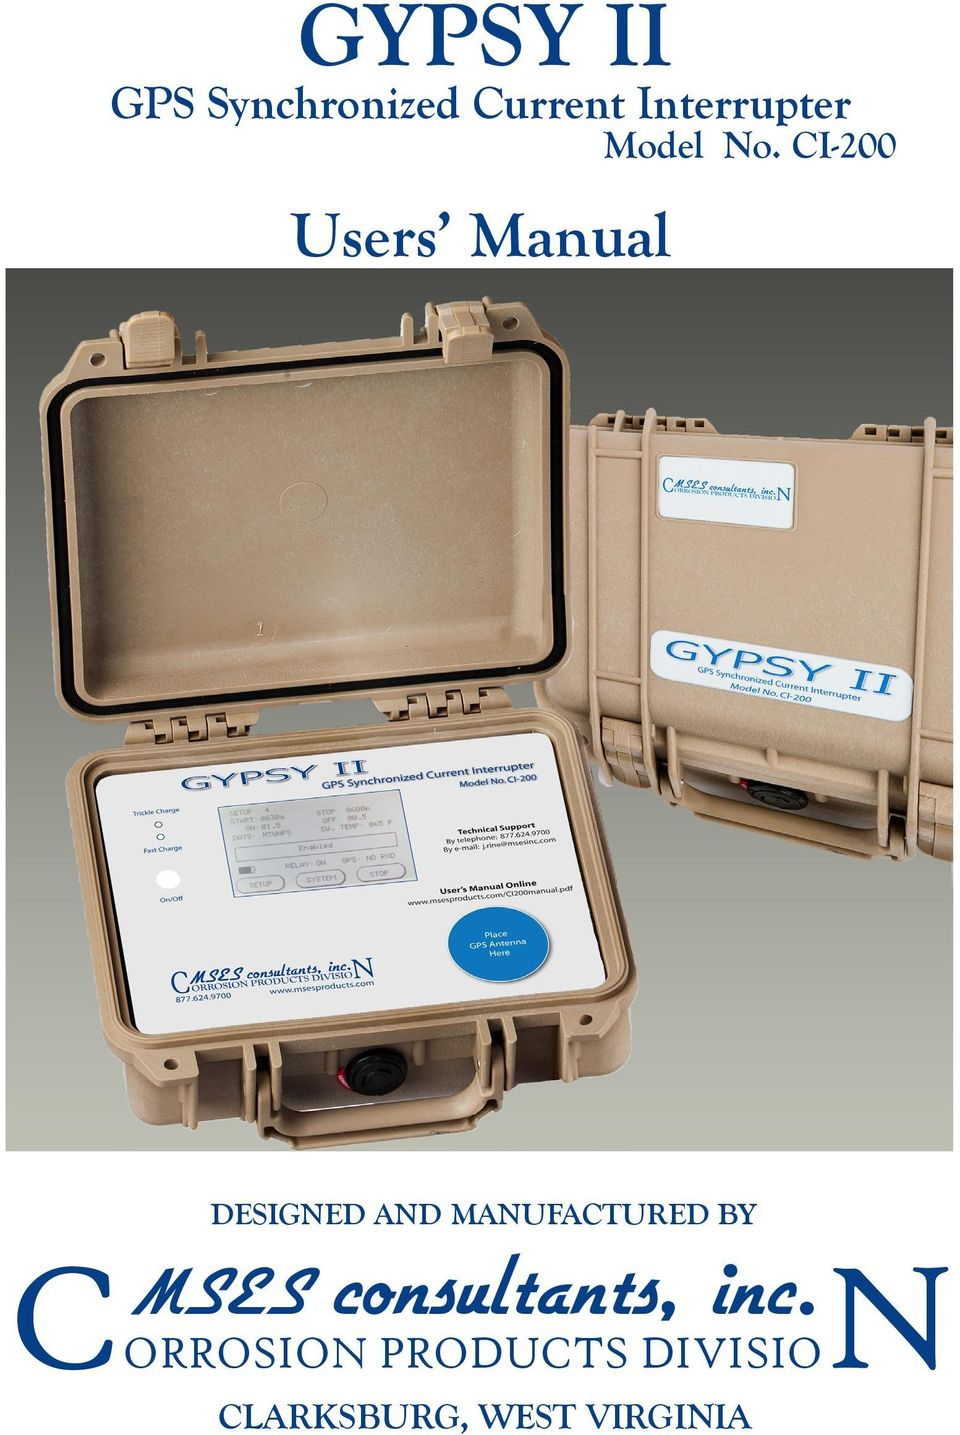 CI-200 Users Manual DESIGNED AND MANUFACTURED